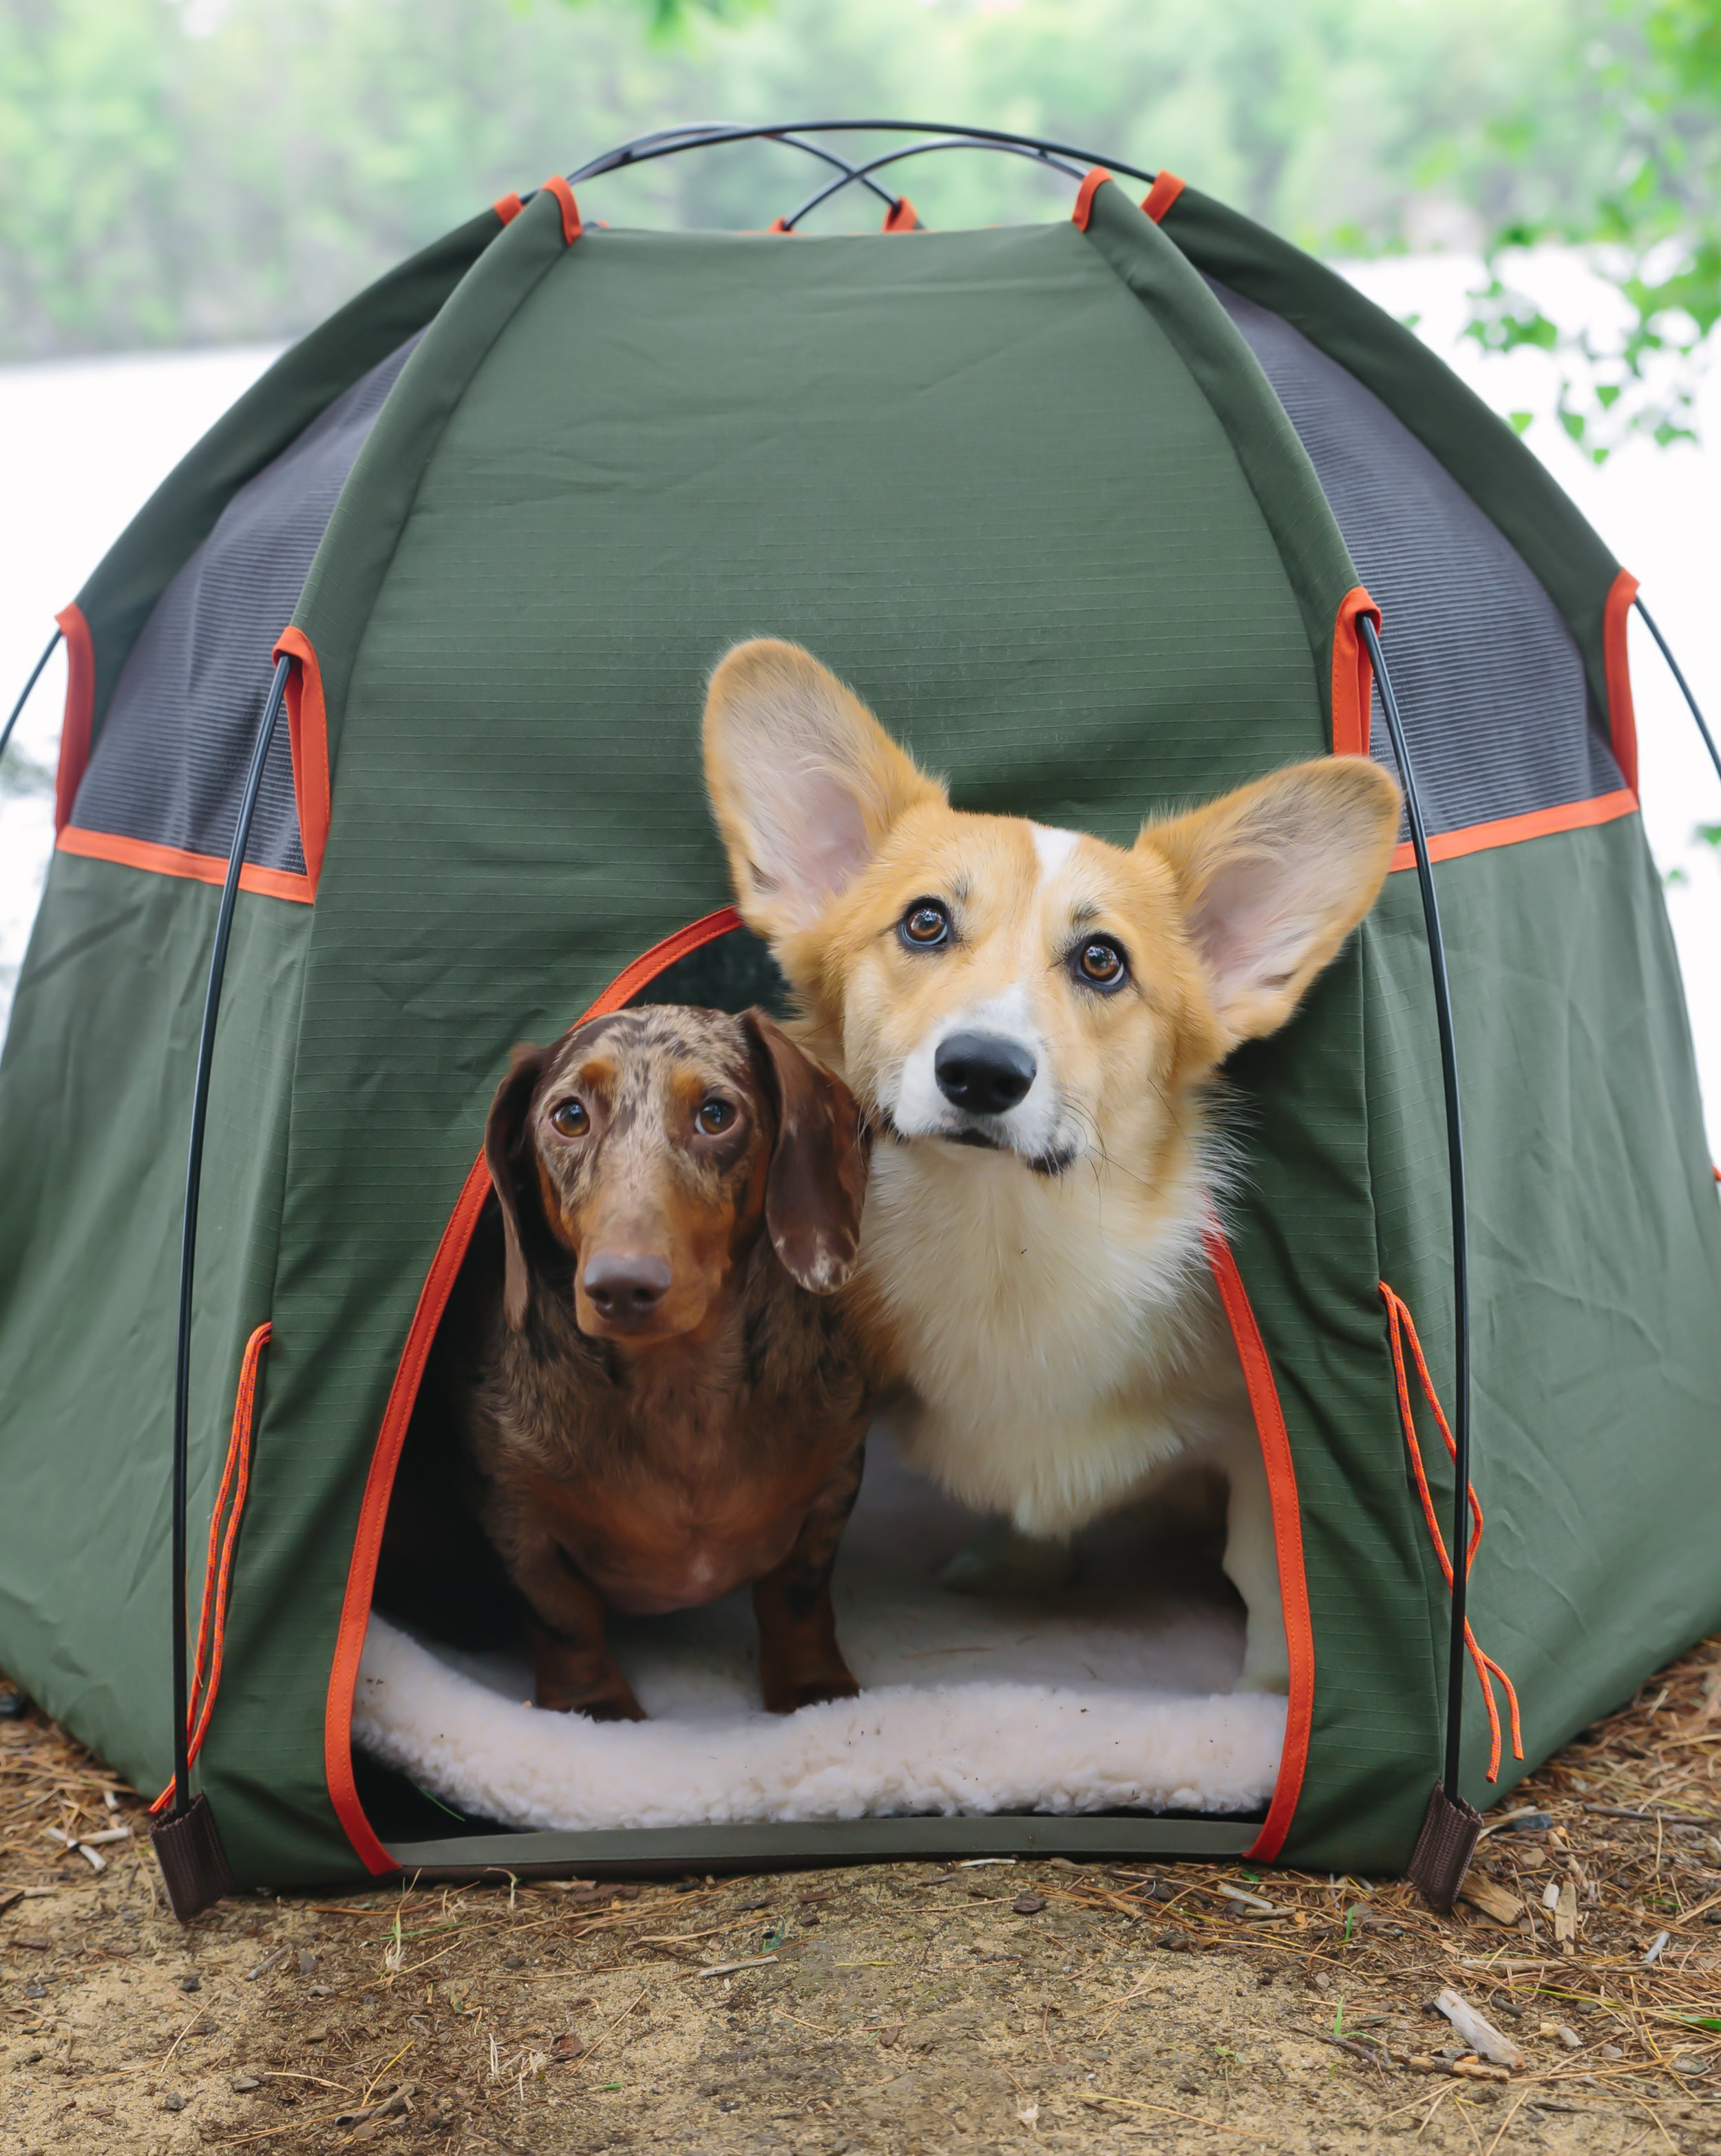 The dogs enjoying their first camping trip c/o our Wagwear tent.